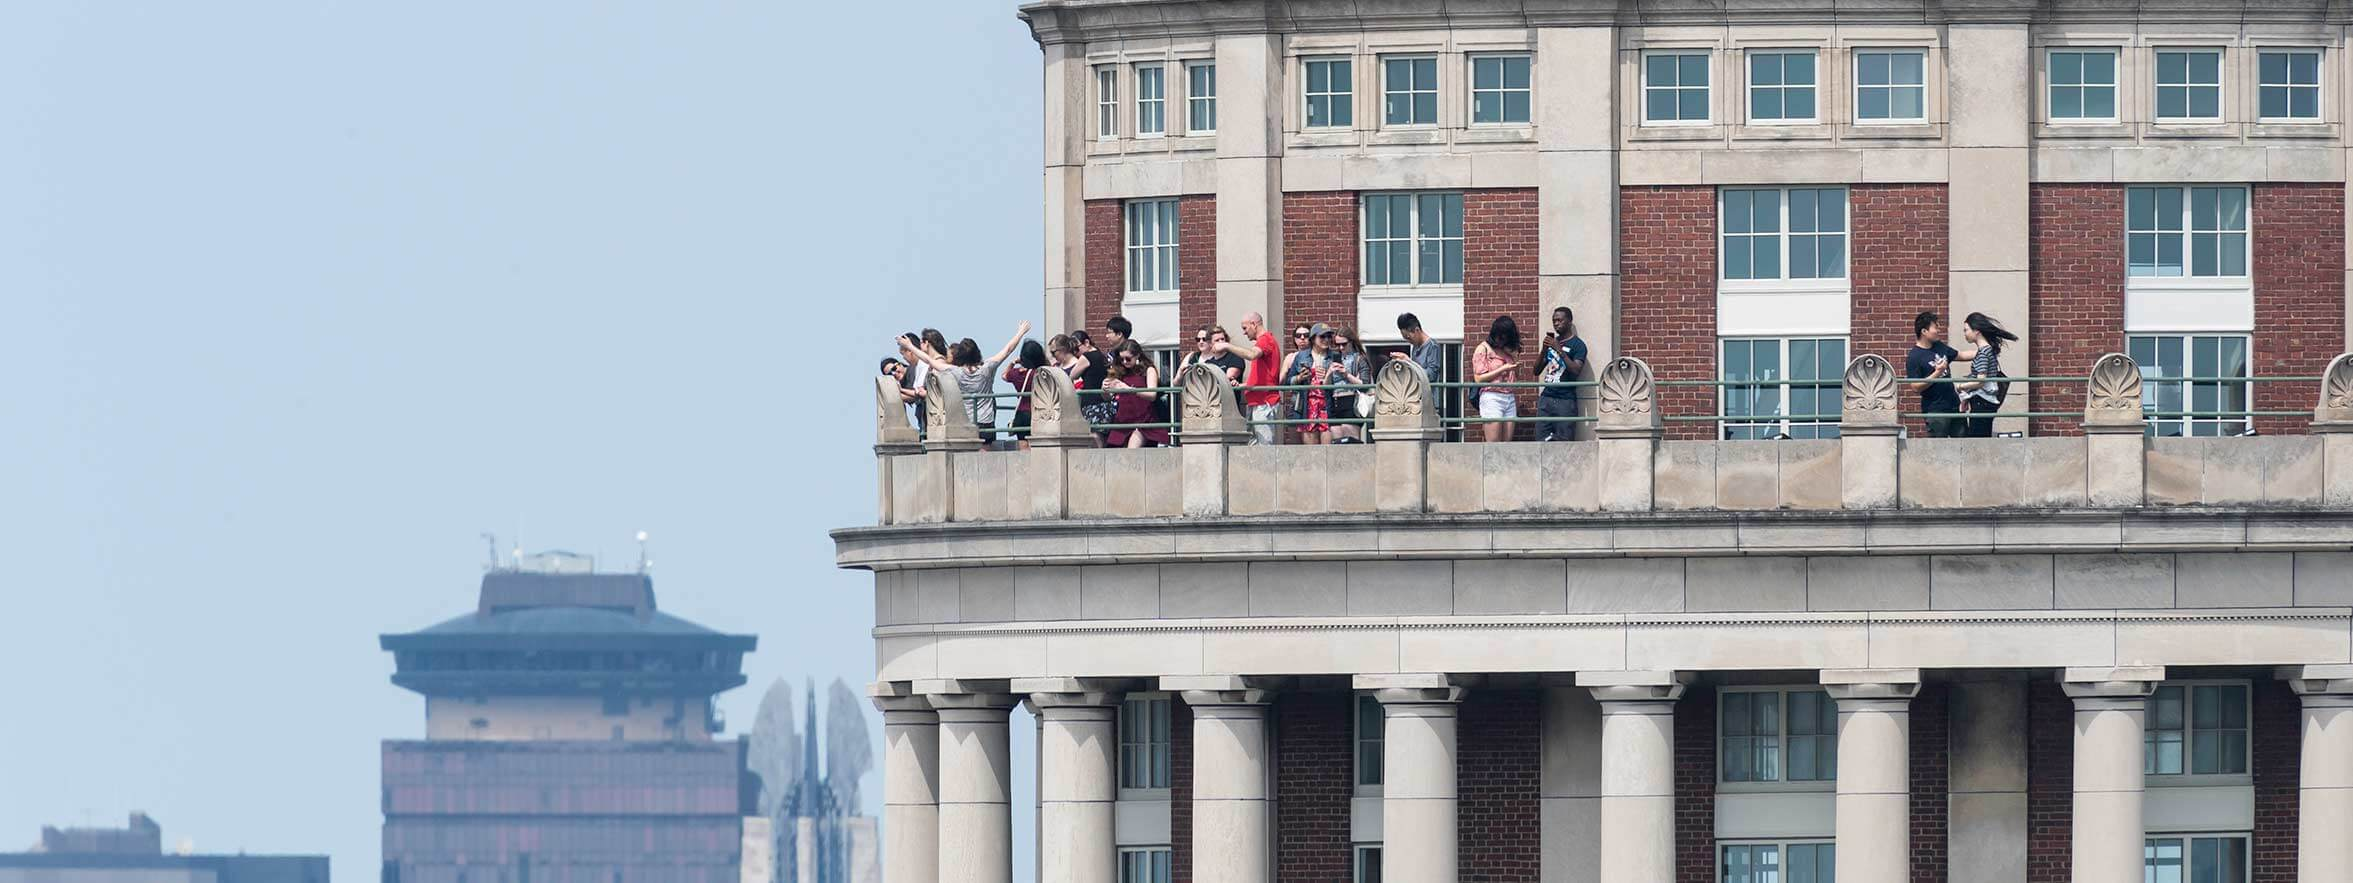 Students on balcony at Rochester, a tier one research university